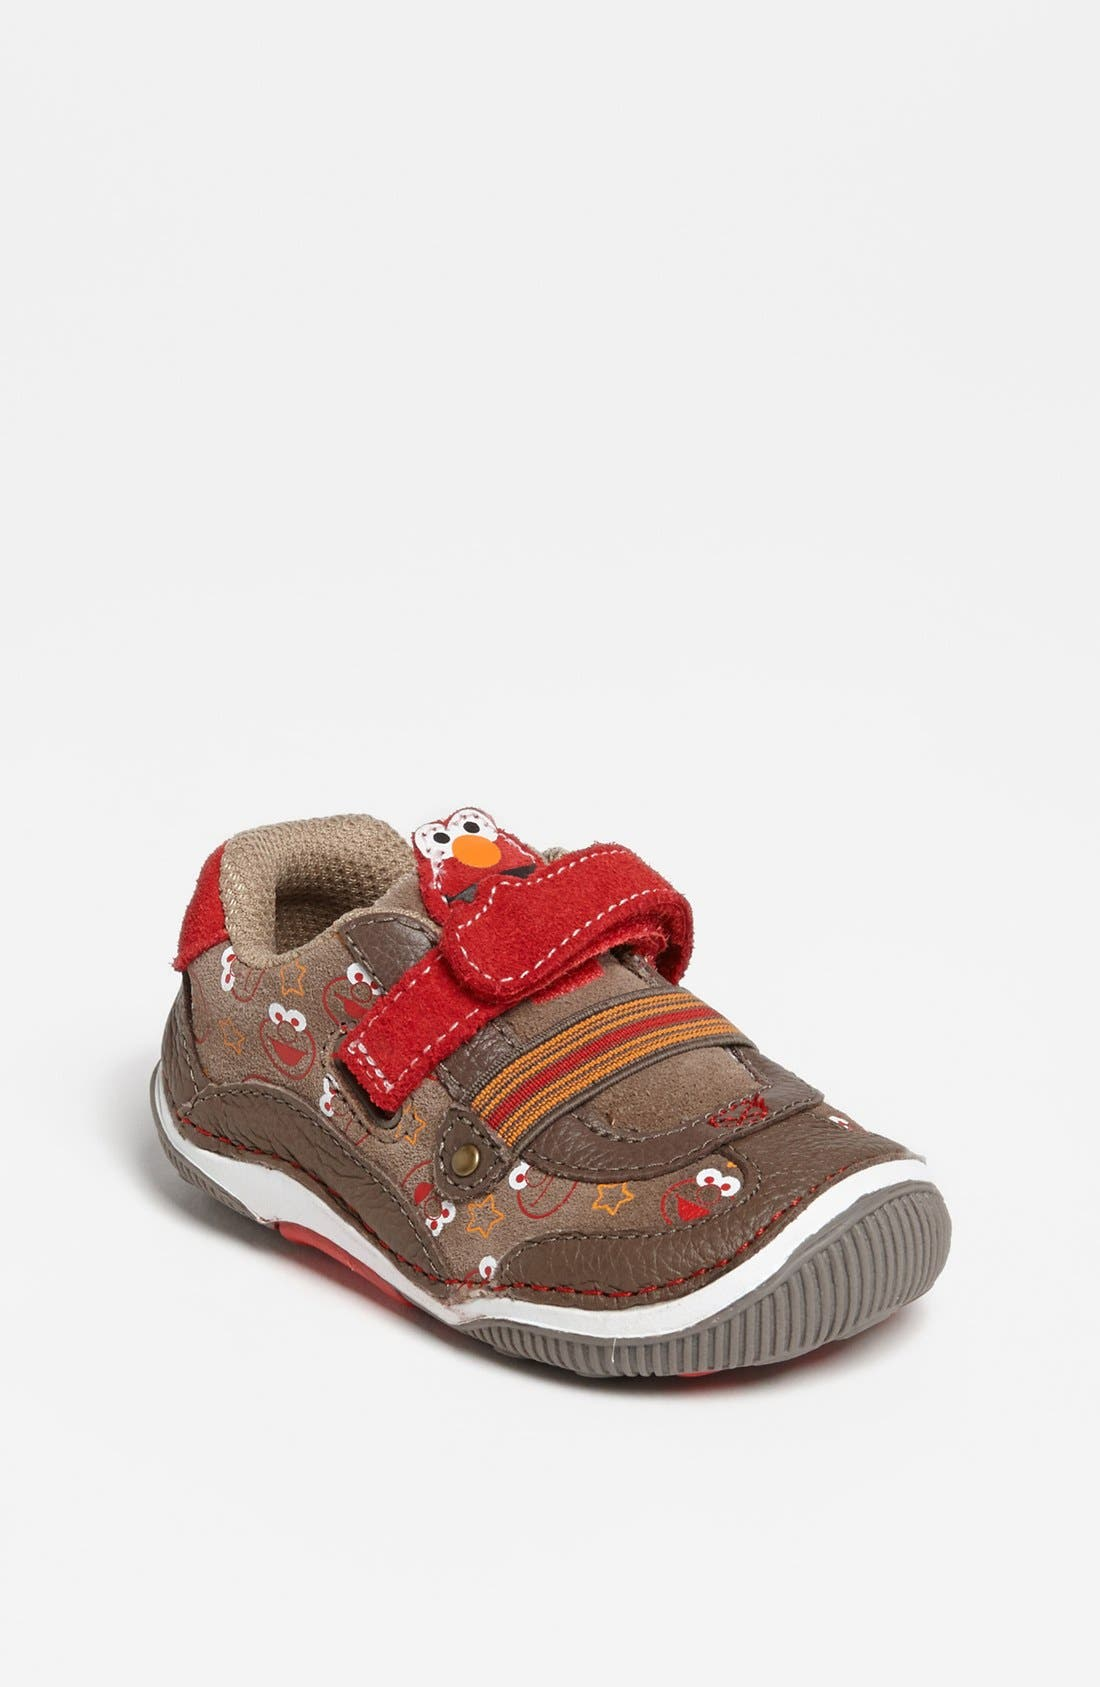 Alternate Image 1 Selected - Stride Rite ' Embracers™ - Elmo™' Sneaker (Baby, Walker & Toddler)